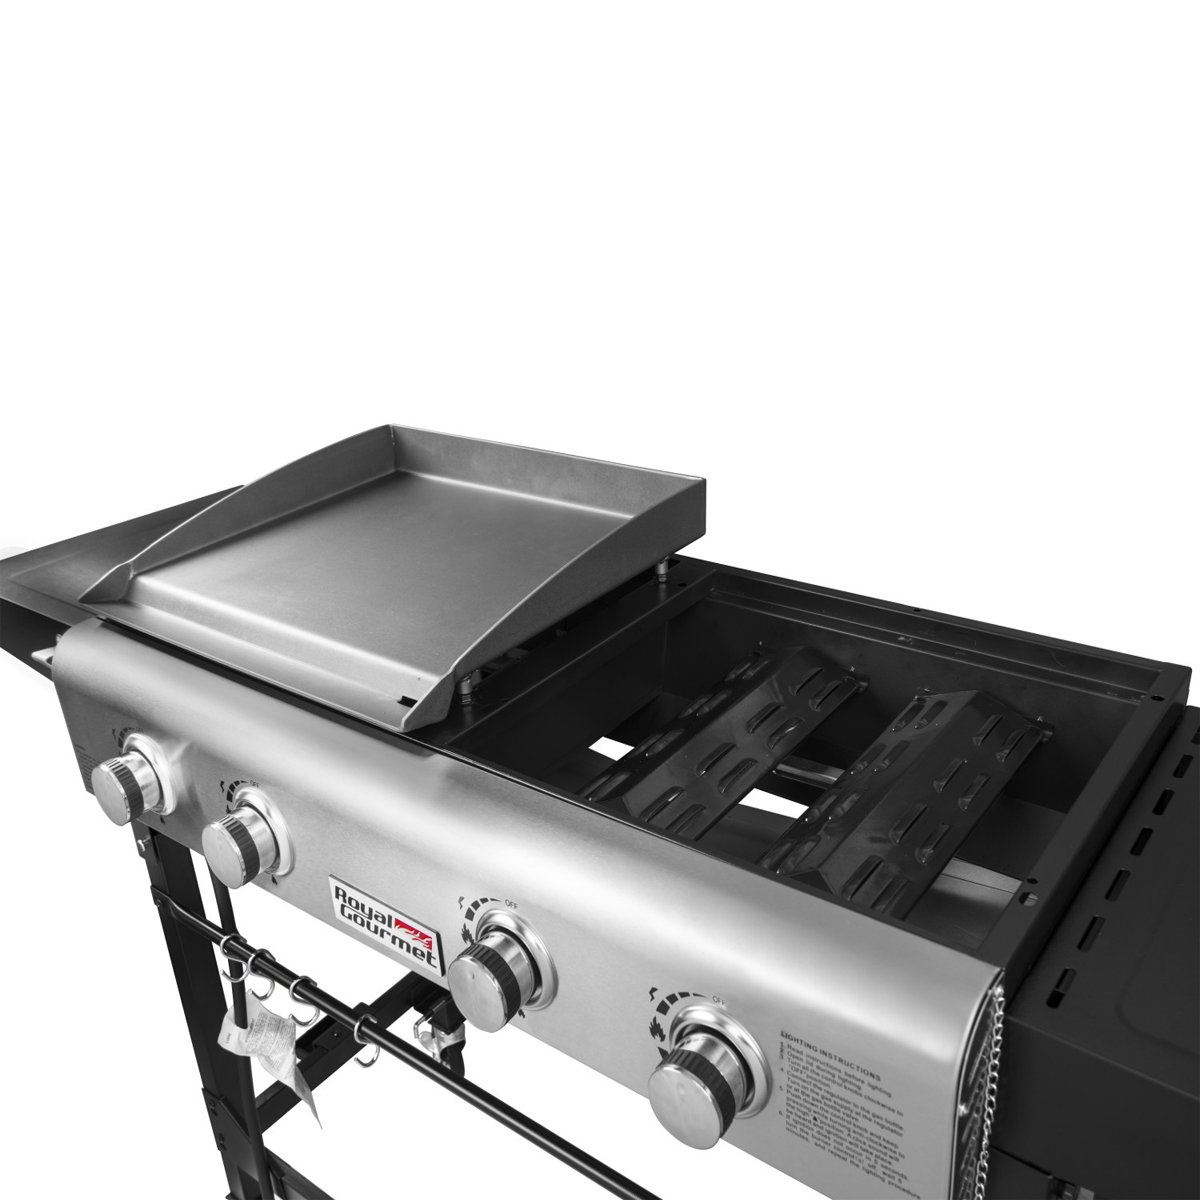 bc9d89c8525 Royal Gourmet 4Burners Portable Propane Gas Grill and Griddle